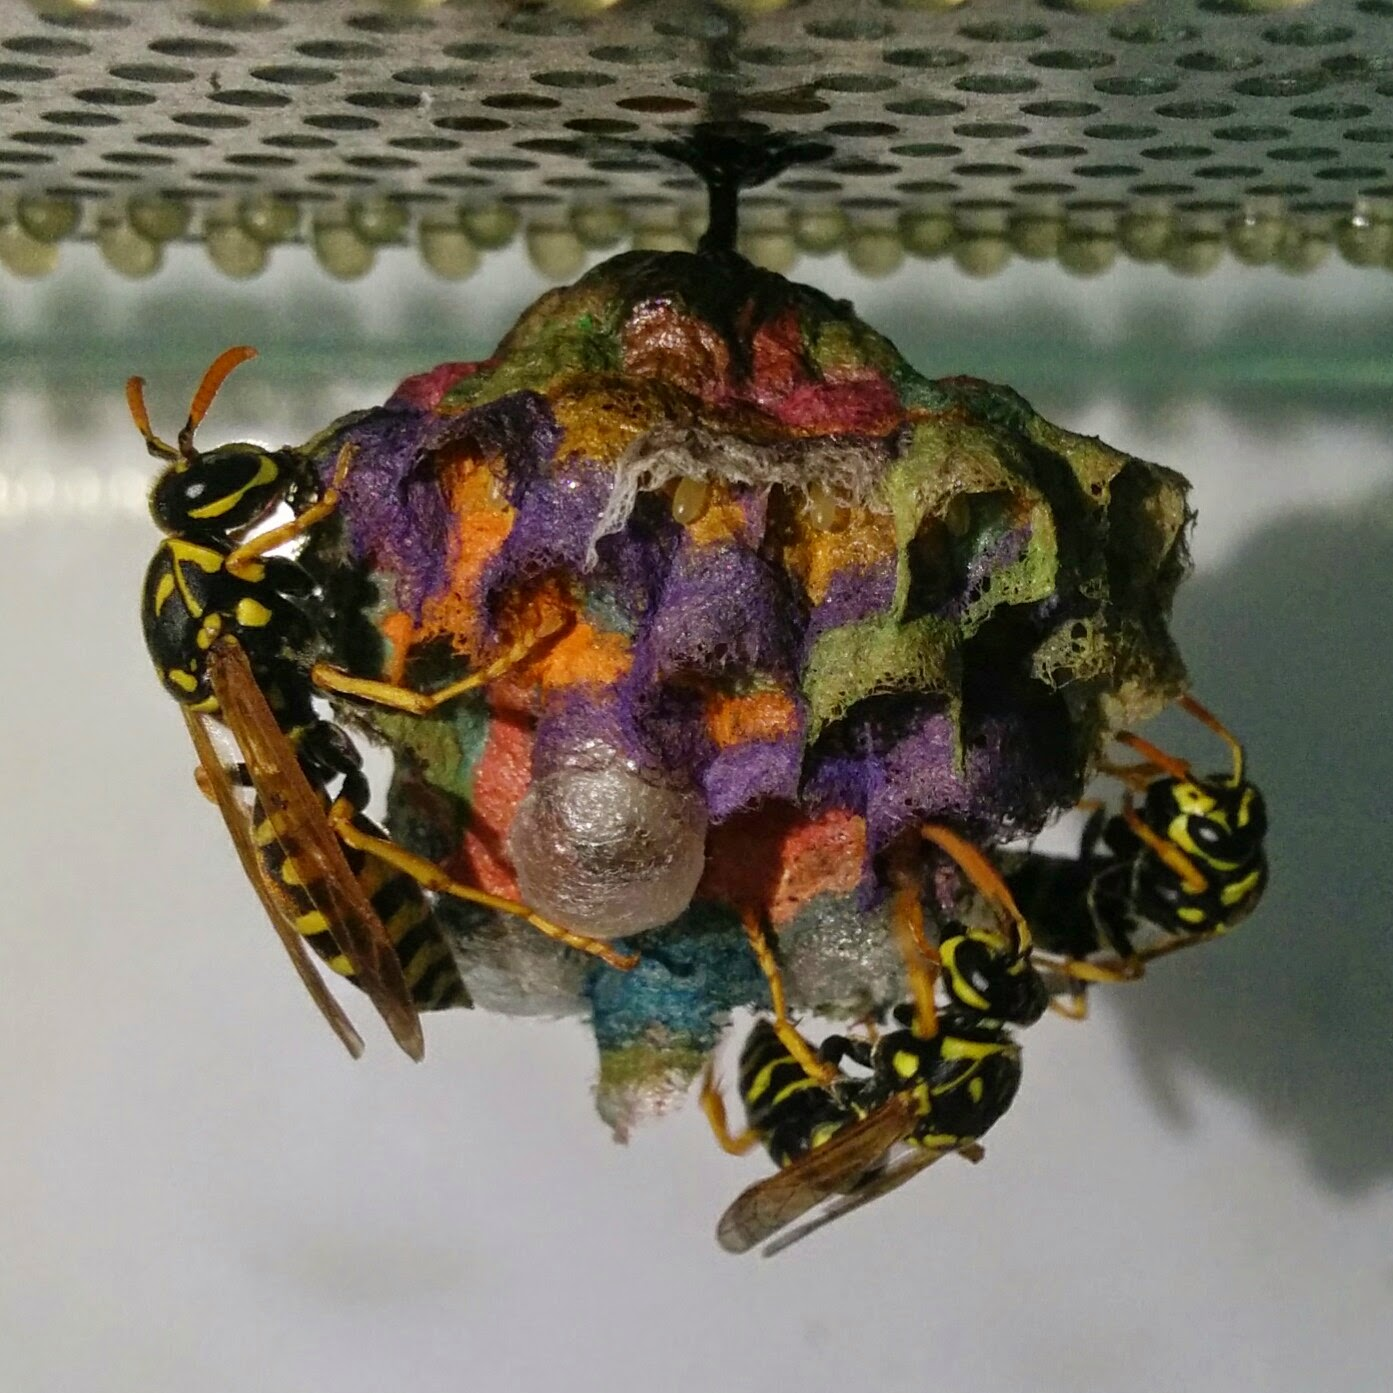 Rainbow colored nests built by wasps. Осы строят гнезда, раскрашенные во все цвета радуги